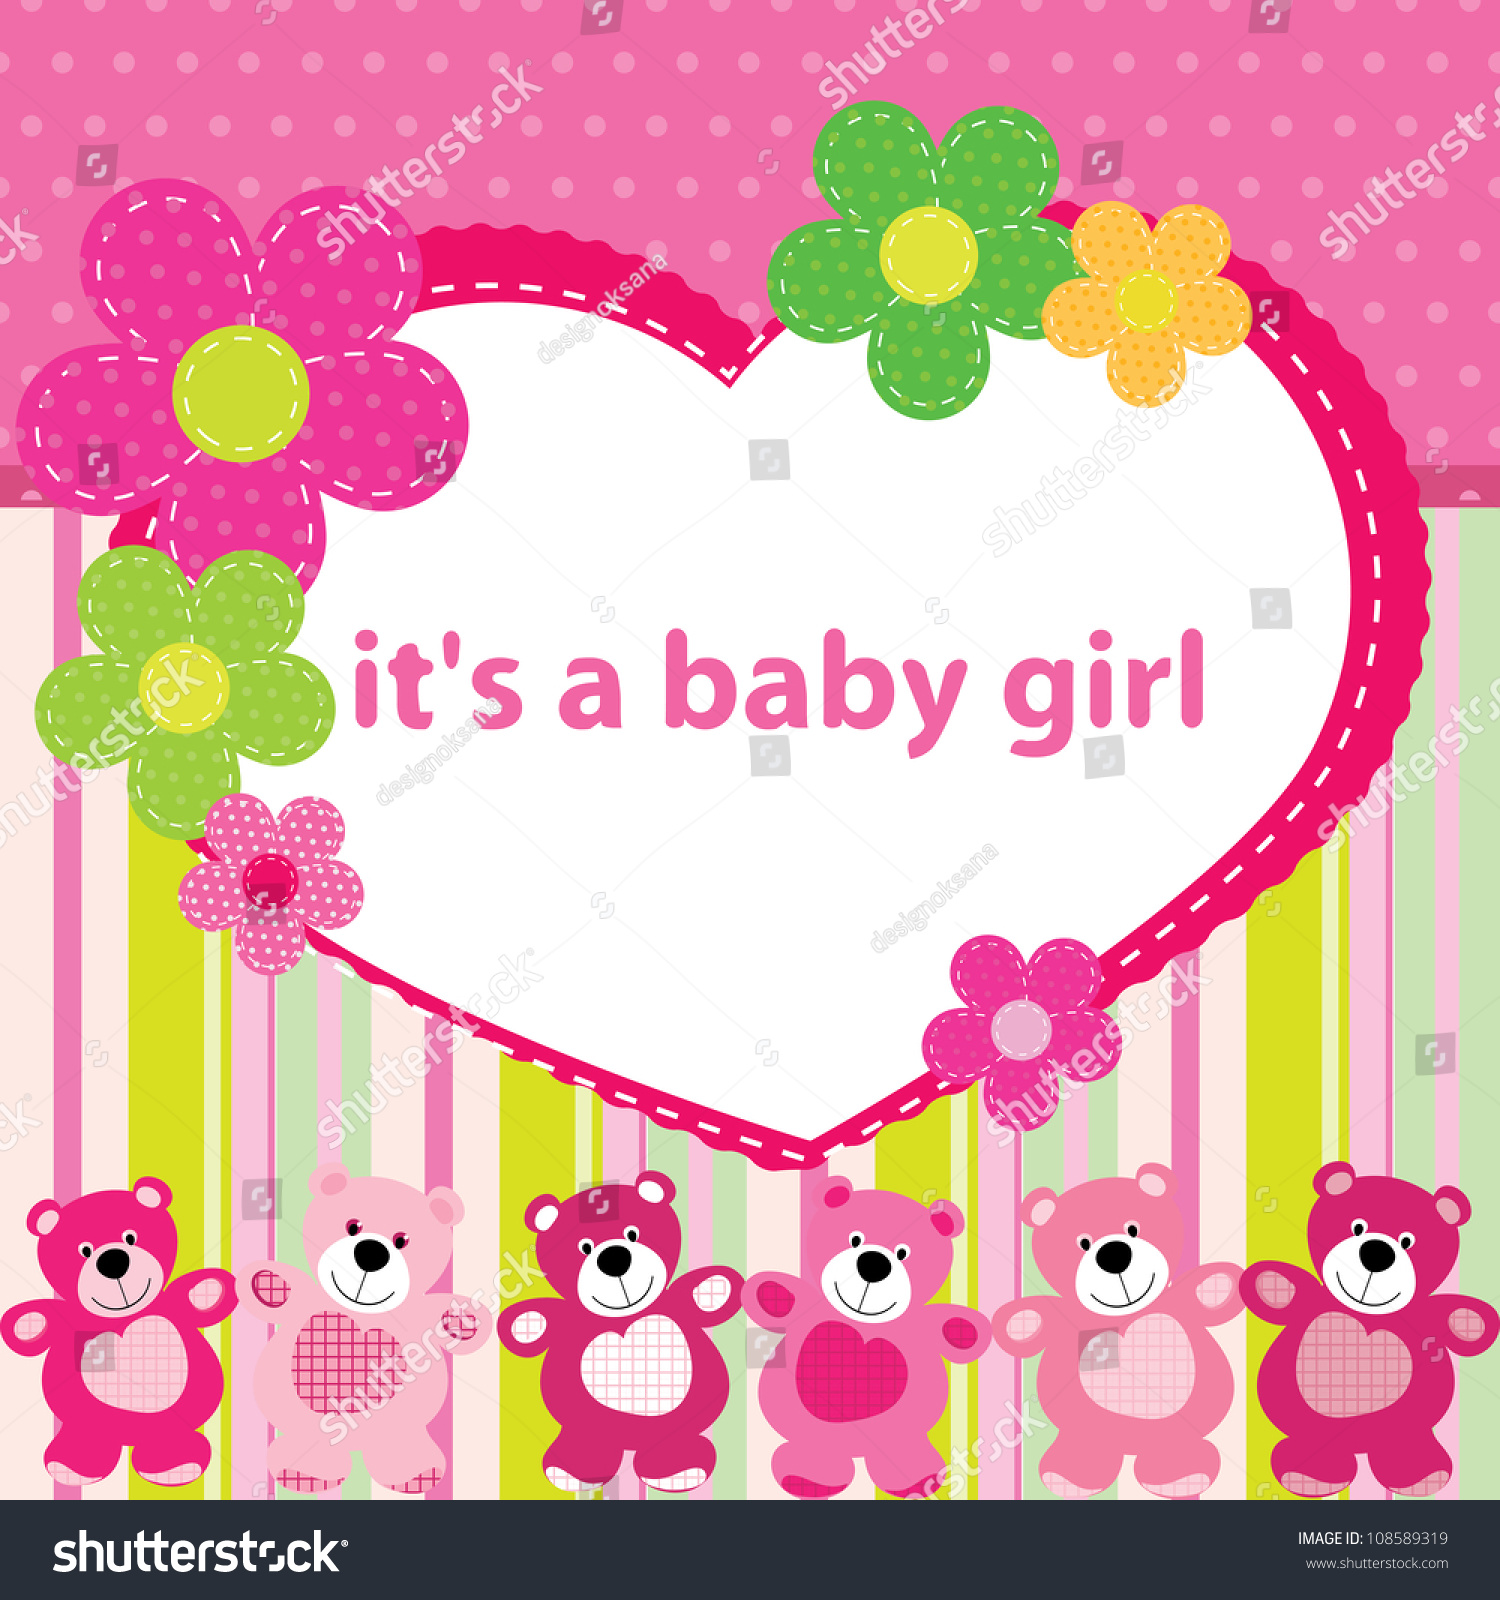 Greeting card birth baby girl stock vector 108589319 shutterstock greeting card with the birth of a baby girl kristyandbryce Images